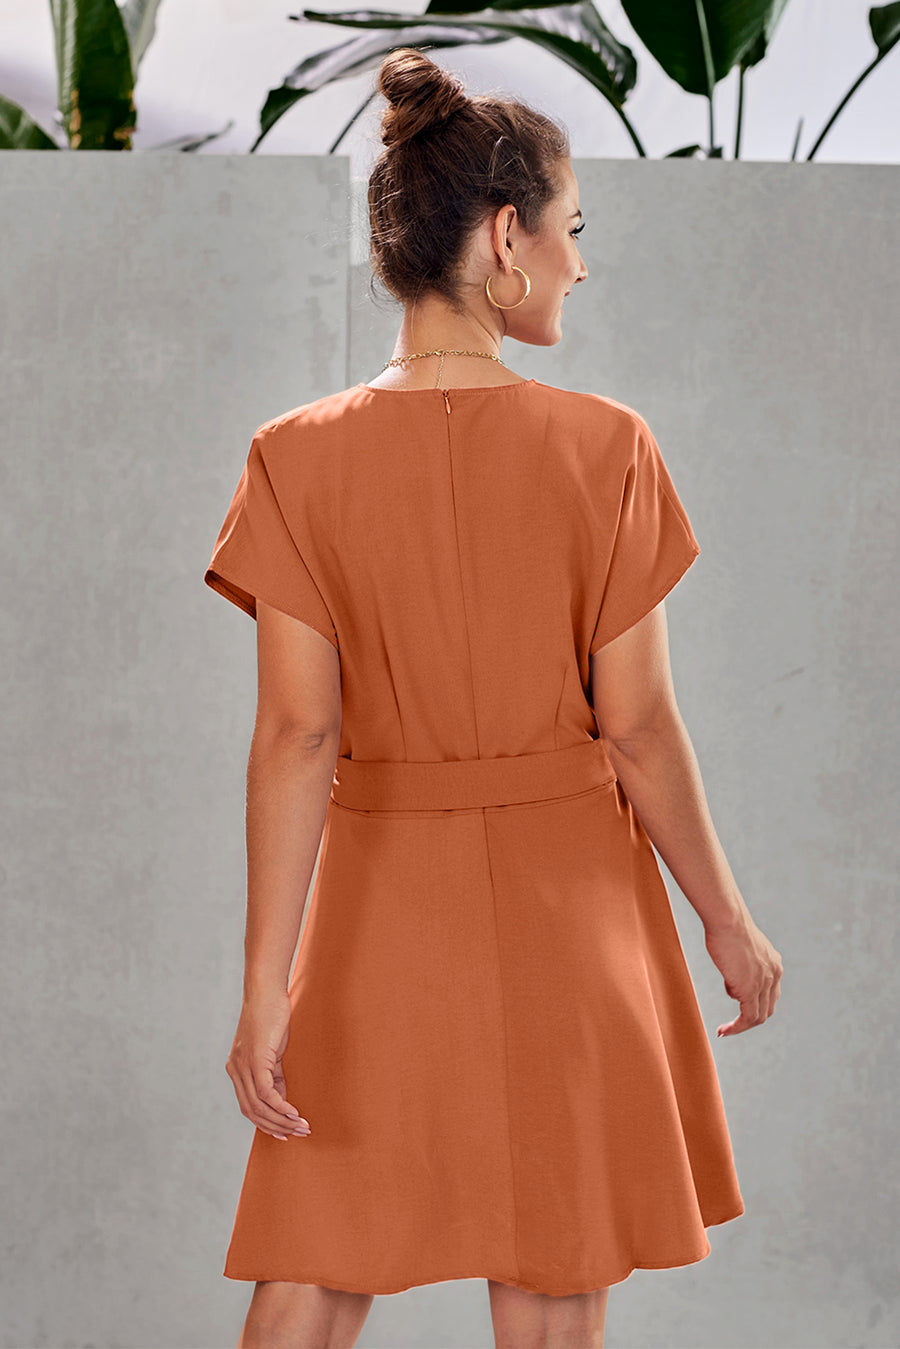 Orange Button Short Sleeve Casual Dress